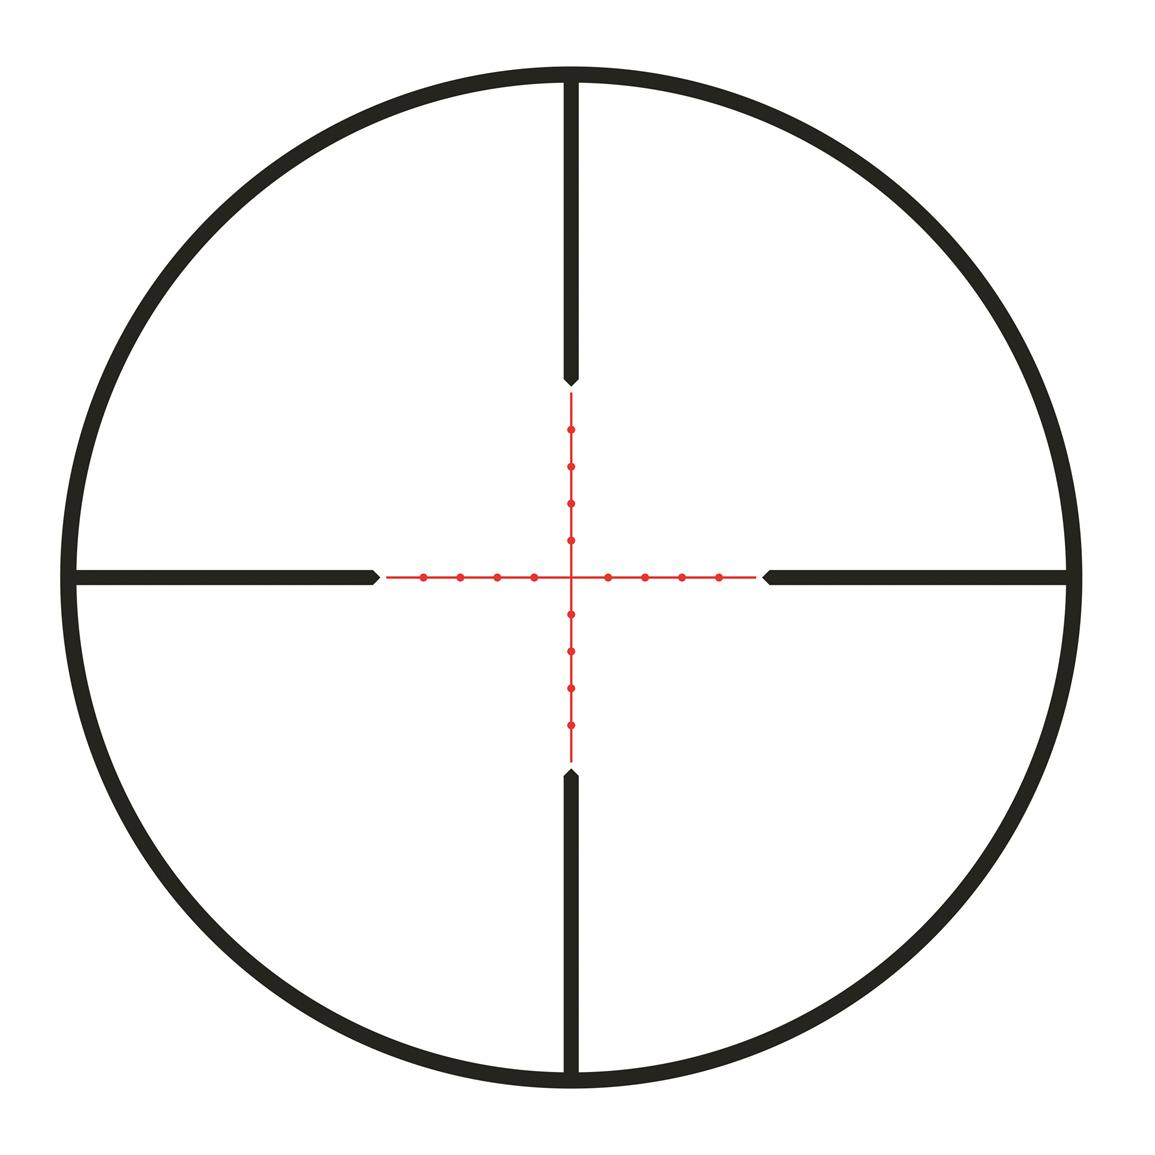 Illuminated Mil-dot reticle